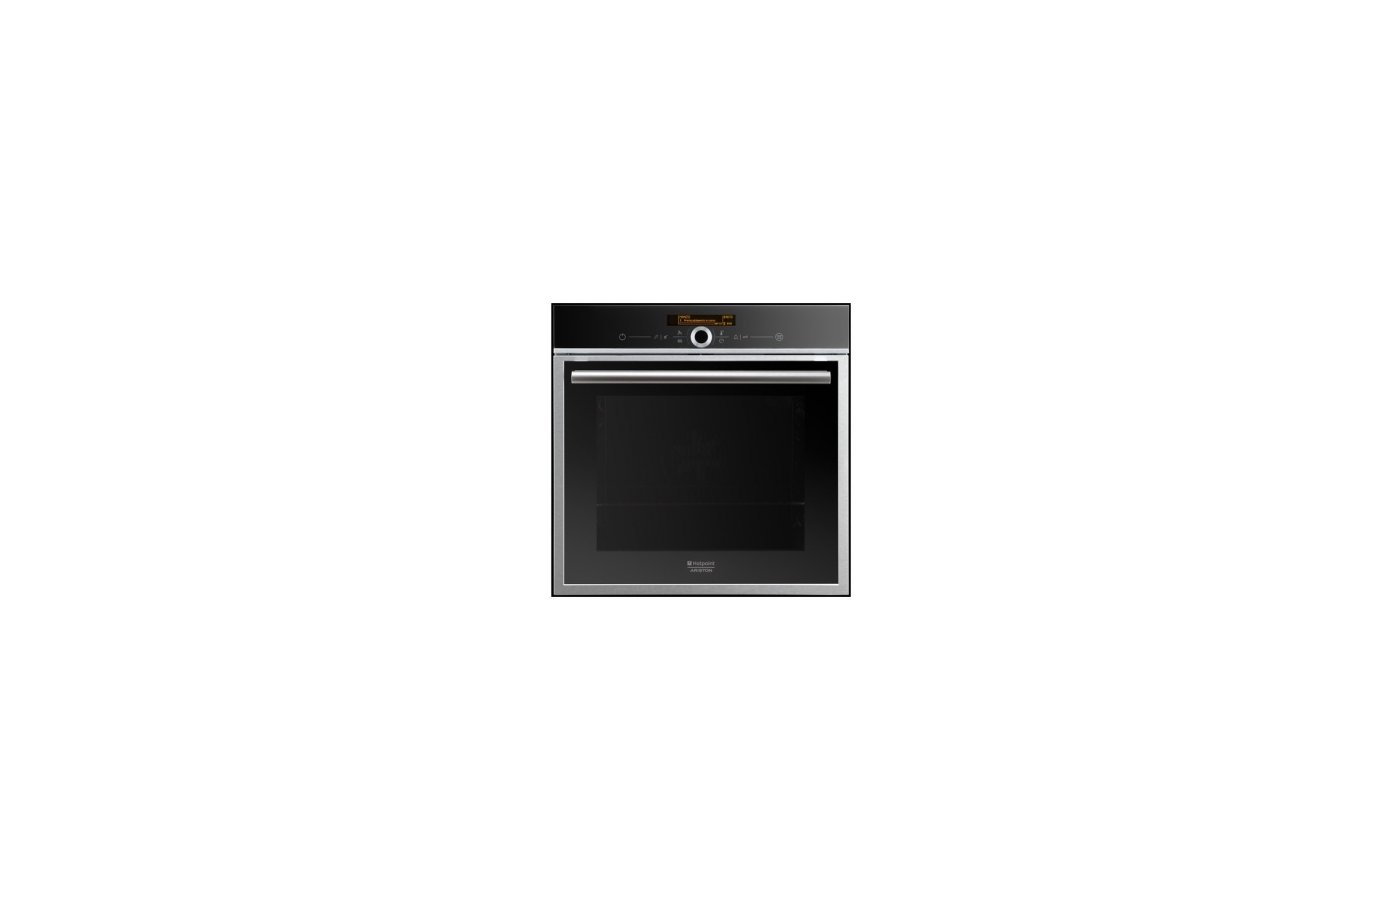 Духовой шкаф HOTPOINT-ARISTON 7OFK1049LS E X RU/HA